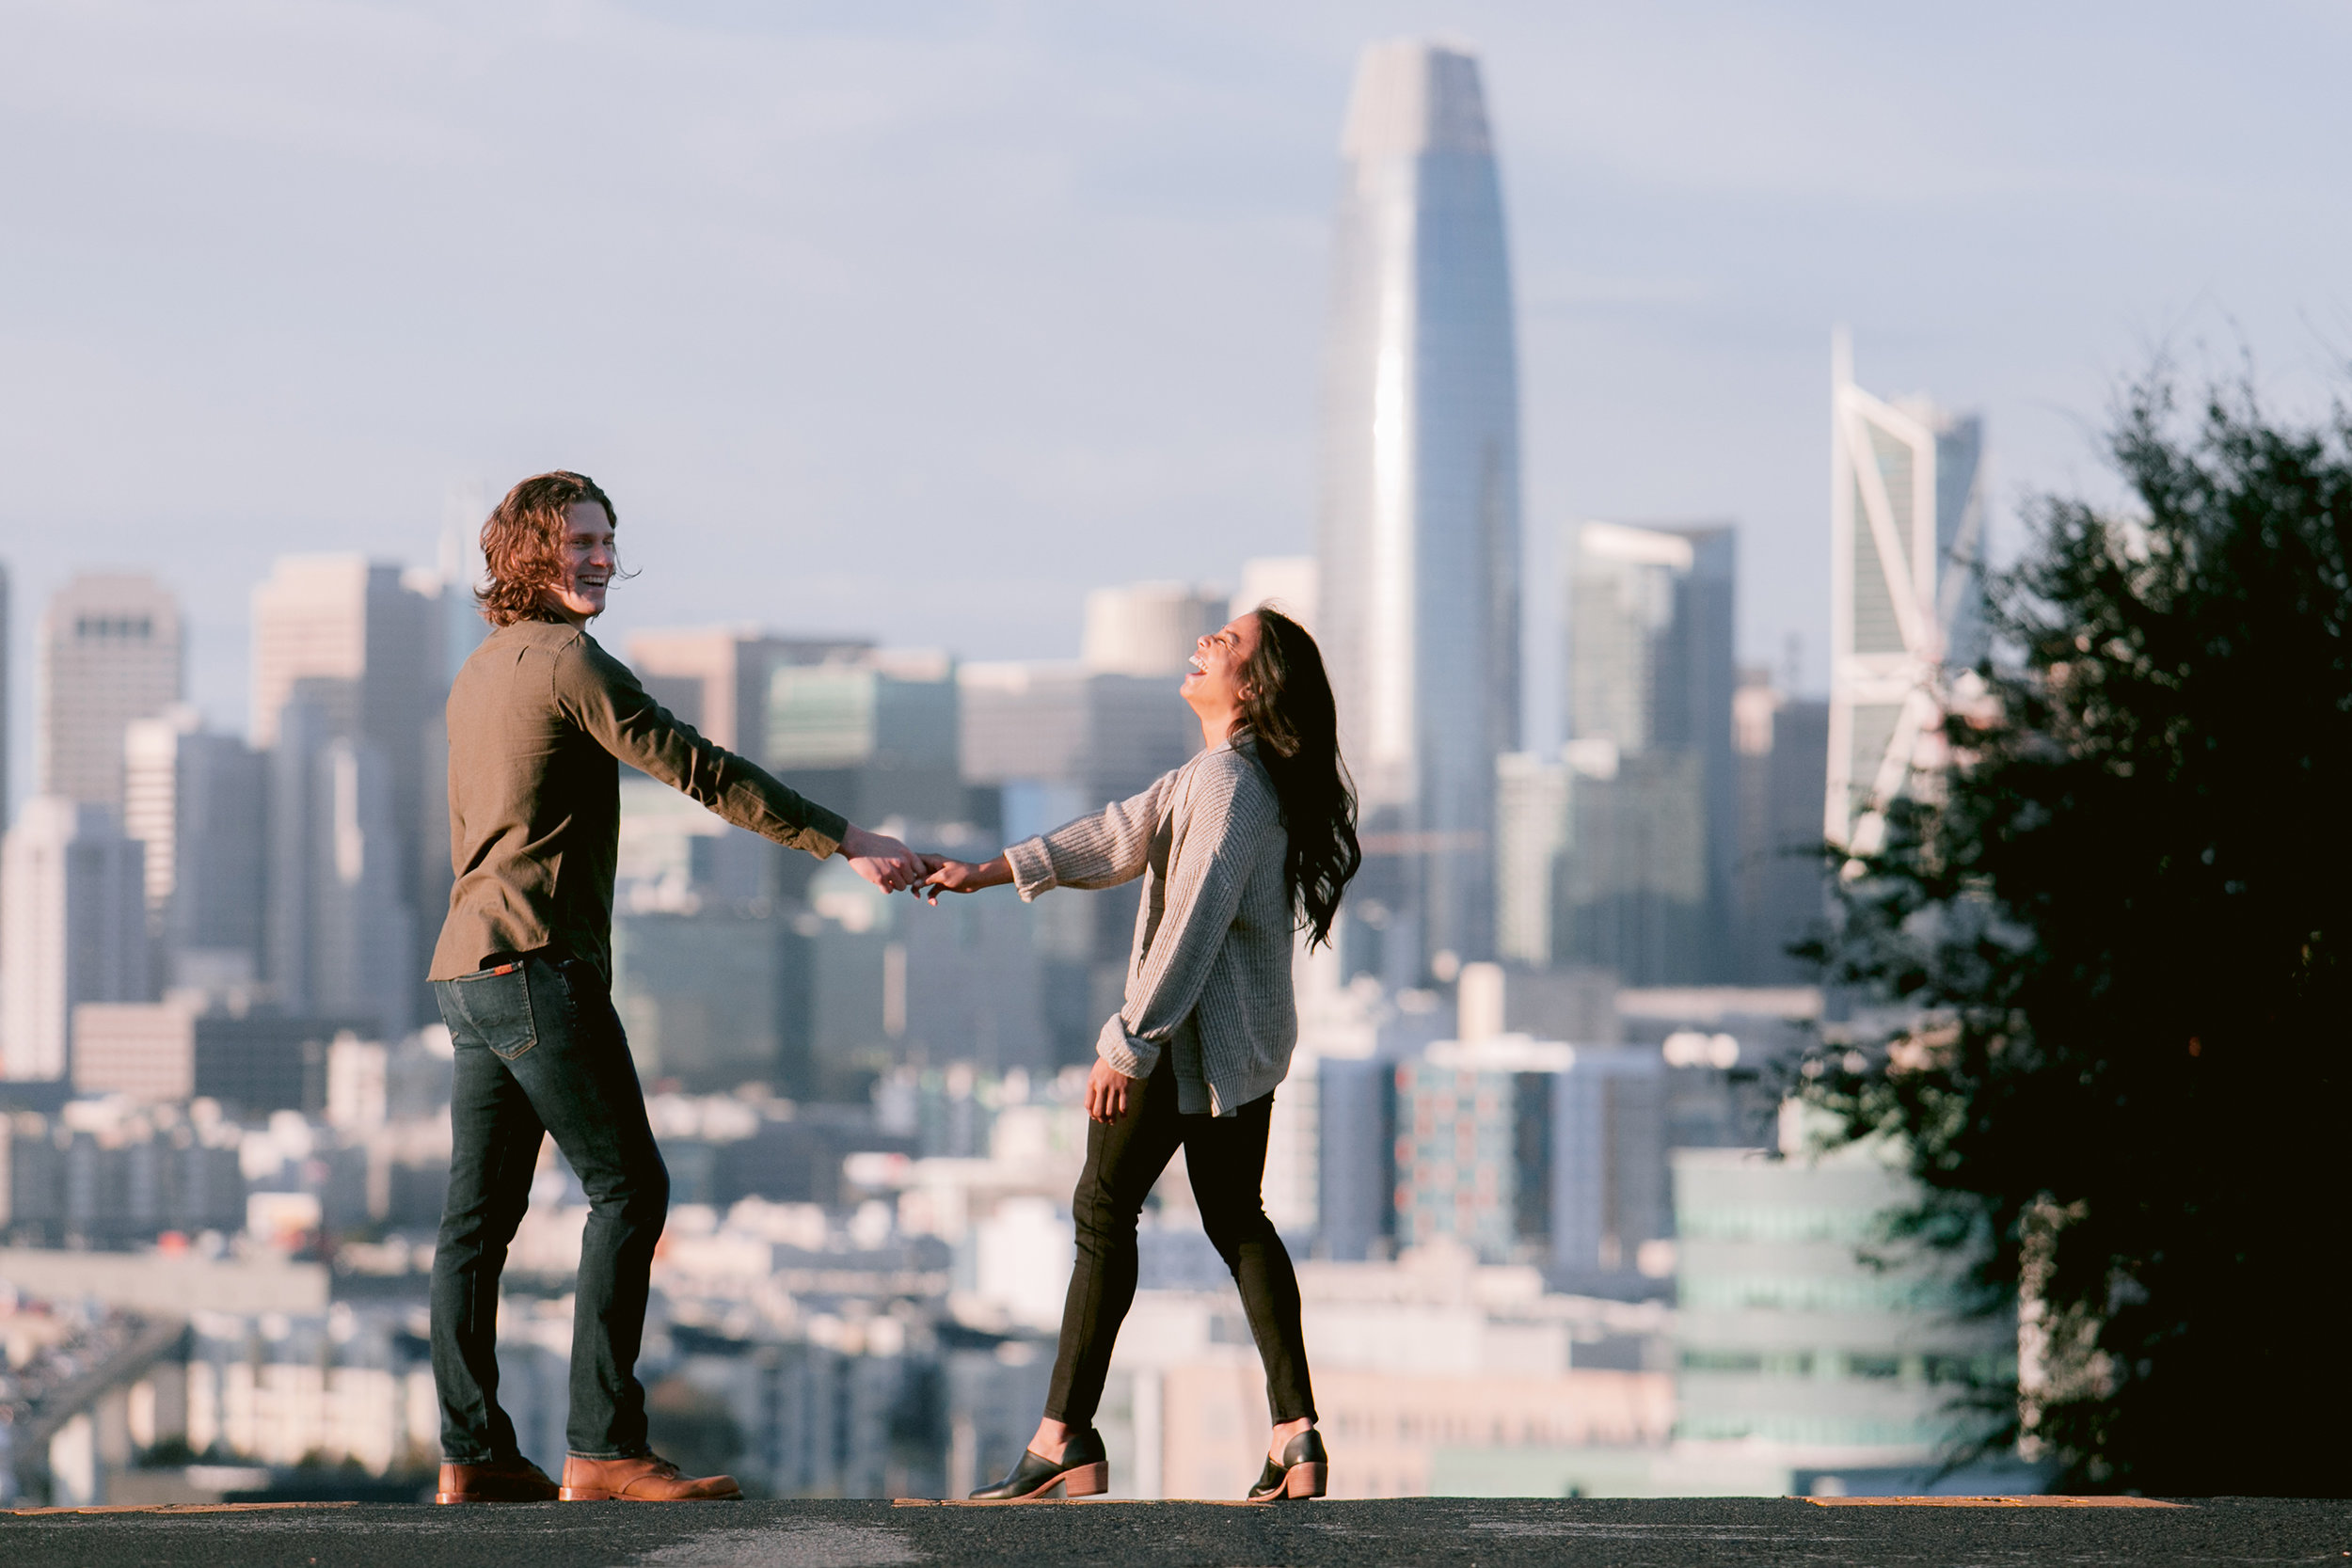 San_Francisco_Engagement_Session_018.jpg